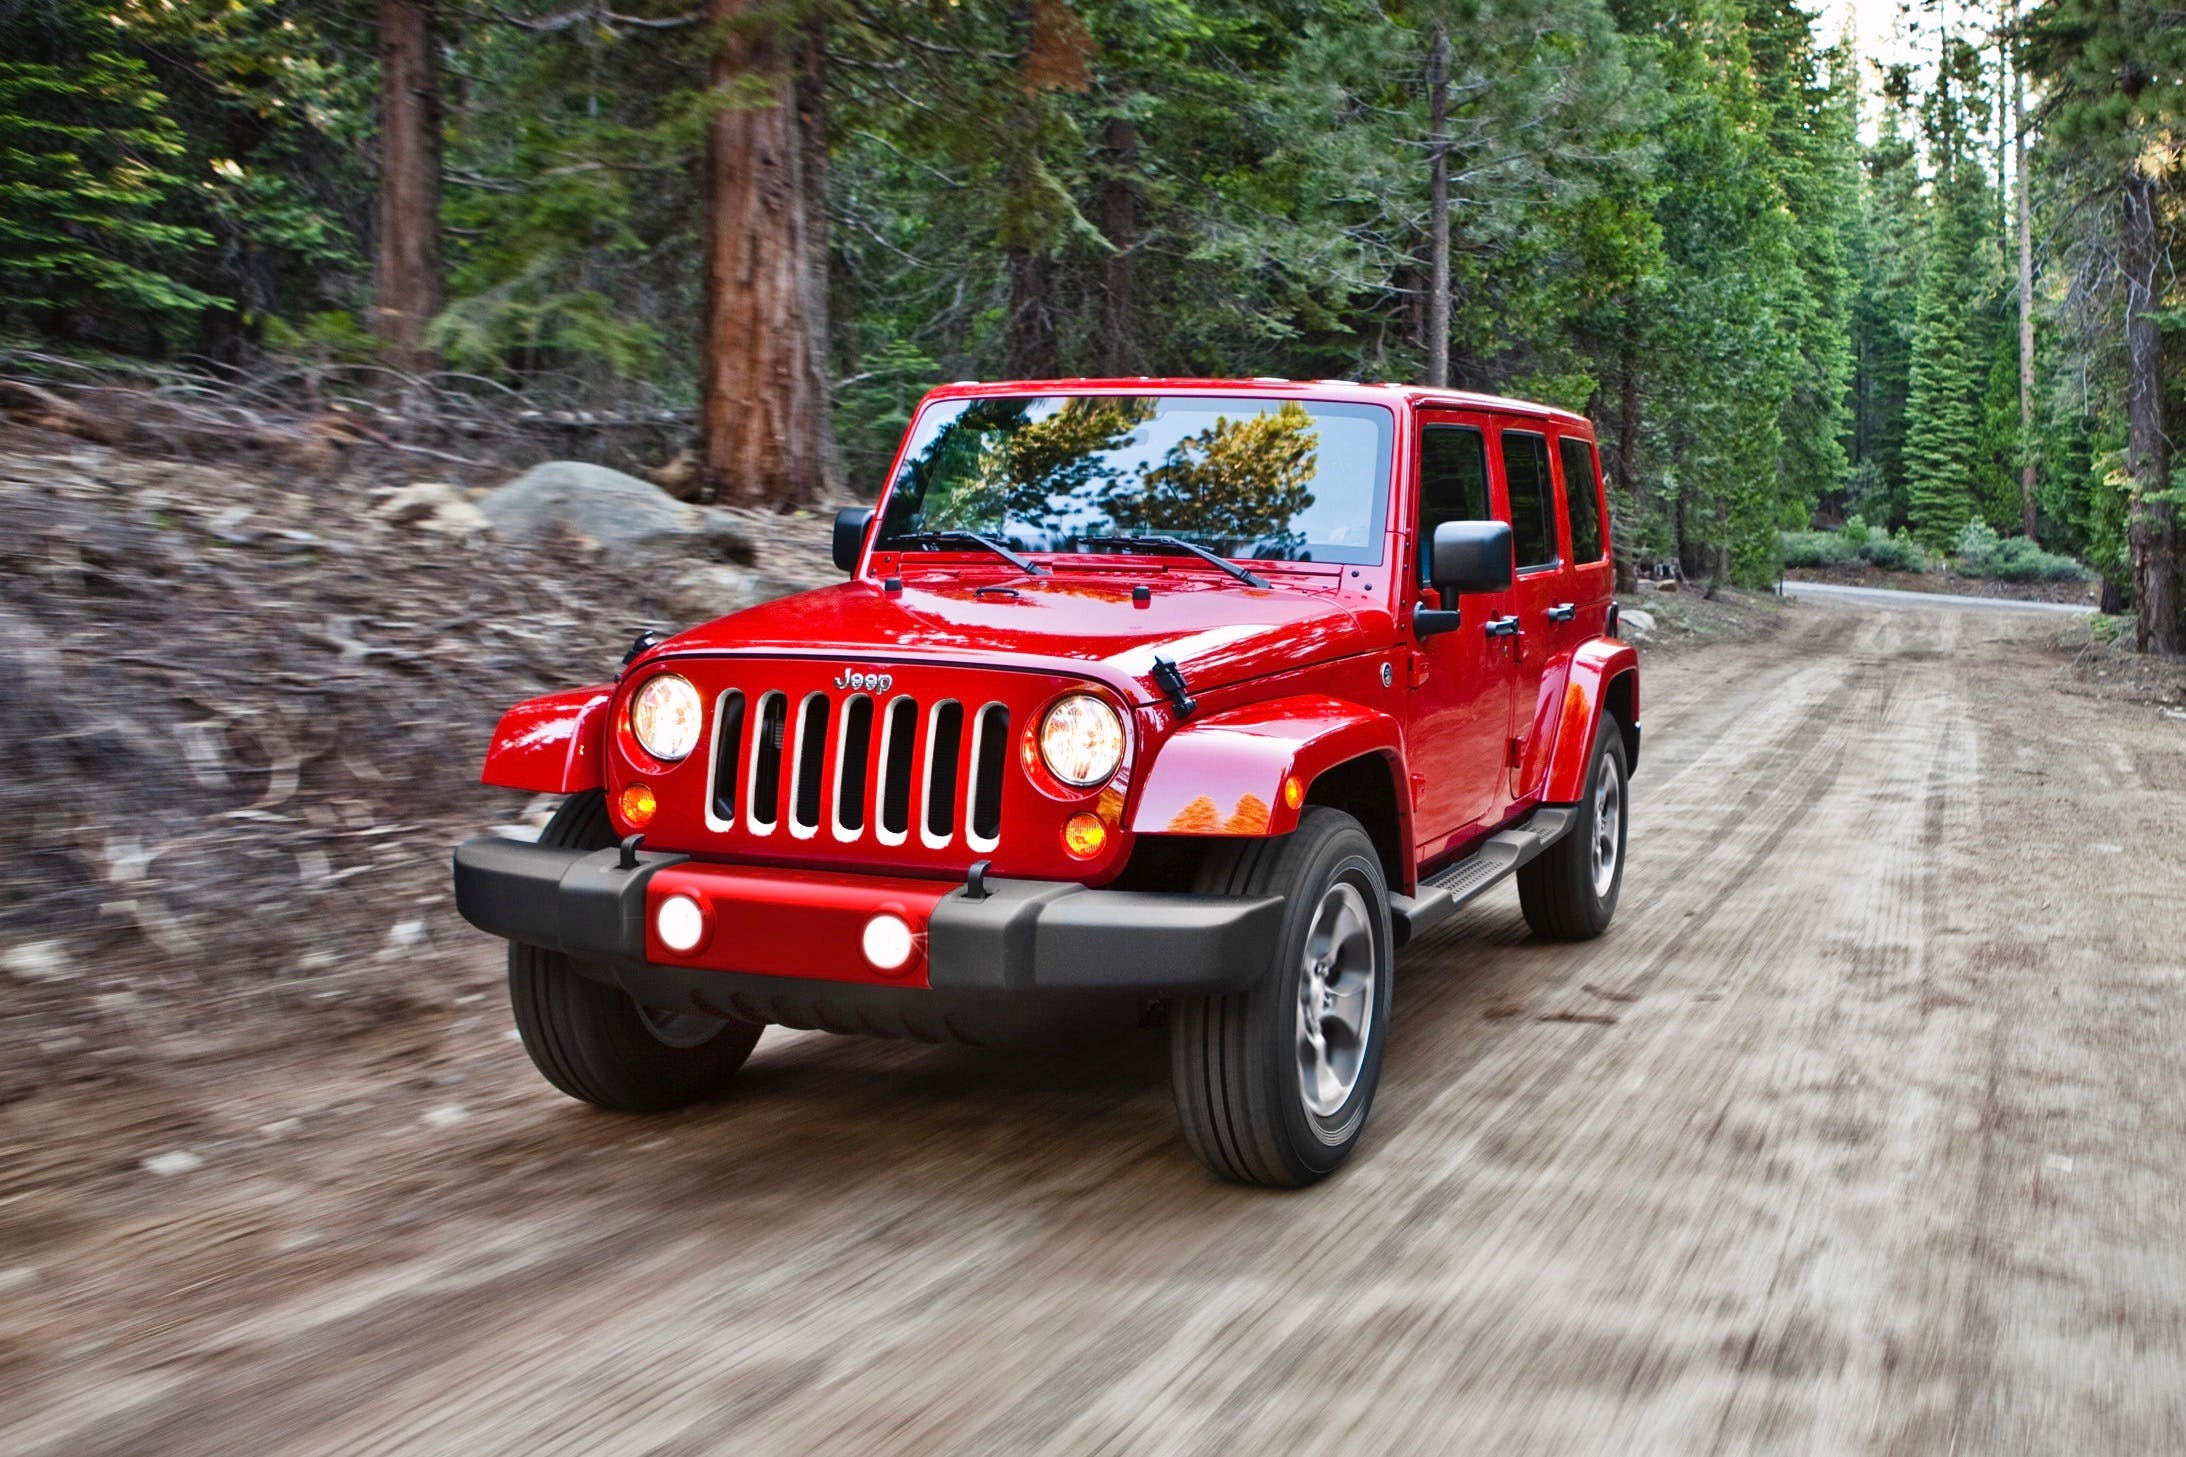 6 Reasons to Buy a Used JK Wrangler Instead of the All-new JL Model